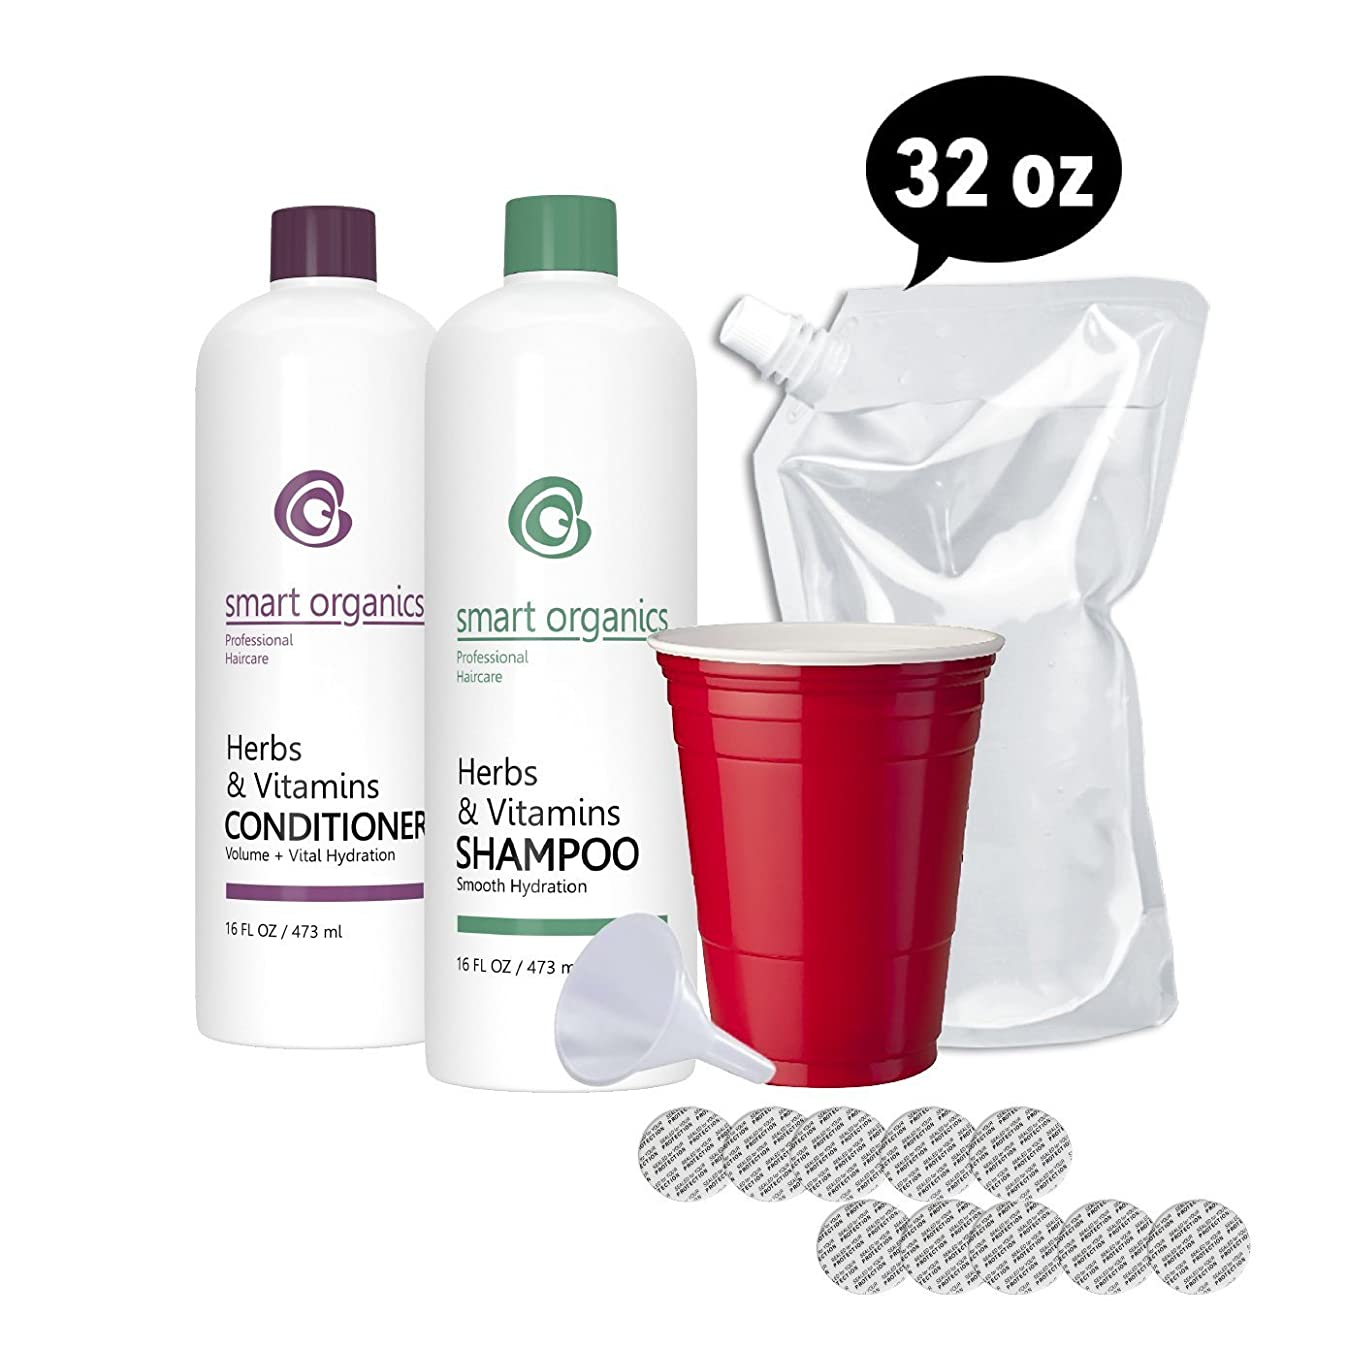 Hidden Flask - Shampoo and Conditioner Set - Includes 2 16 oz Bottles, Funnel, 10 Seals, and 1 Free 32 oz Cruise Flask - Sneak Alcohol Anywhere - Sporting Events, On a Cruise or Glass Restricted Areas